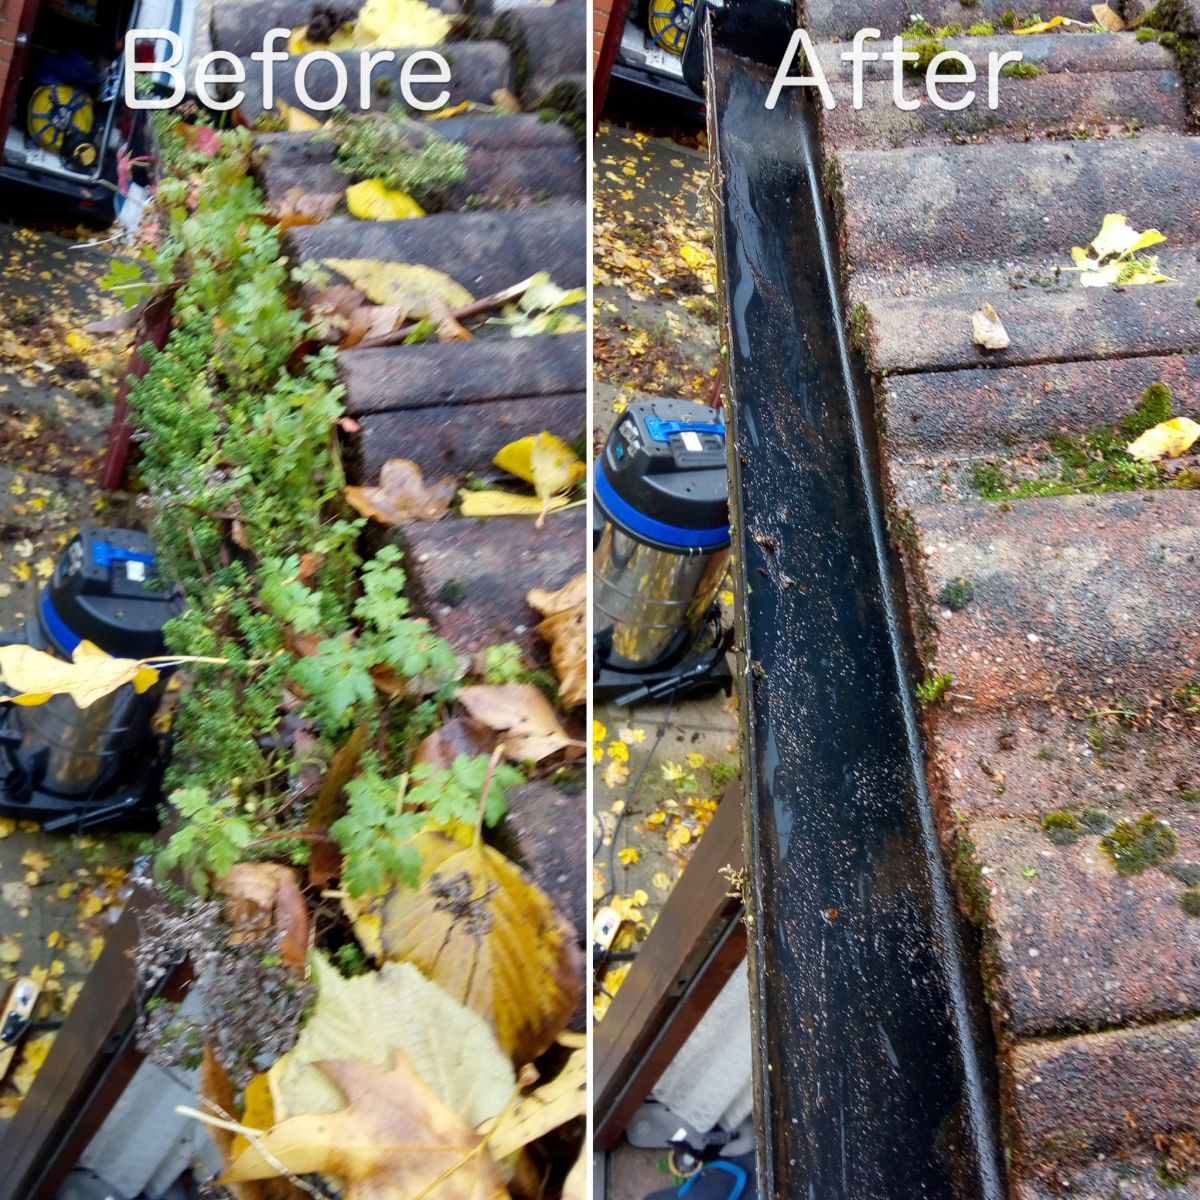 Before and after image of gutter cleaning by LDM Services